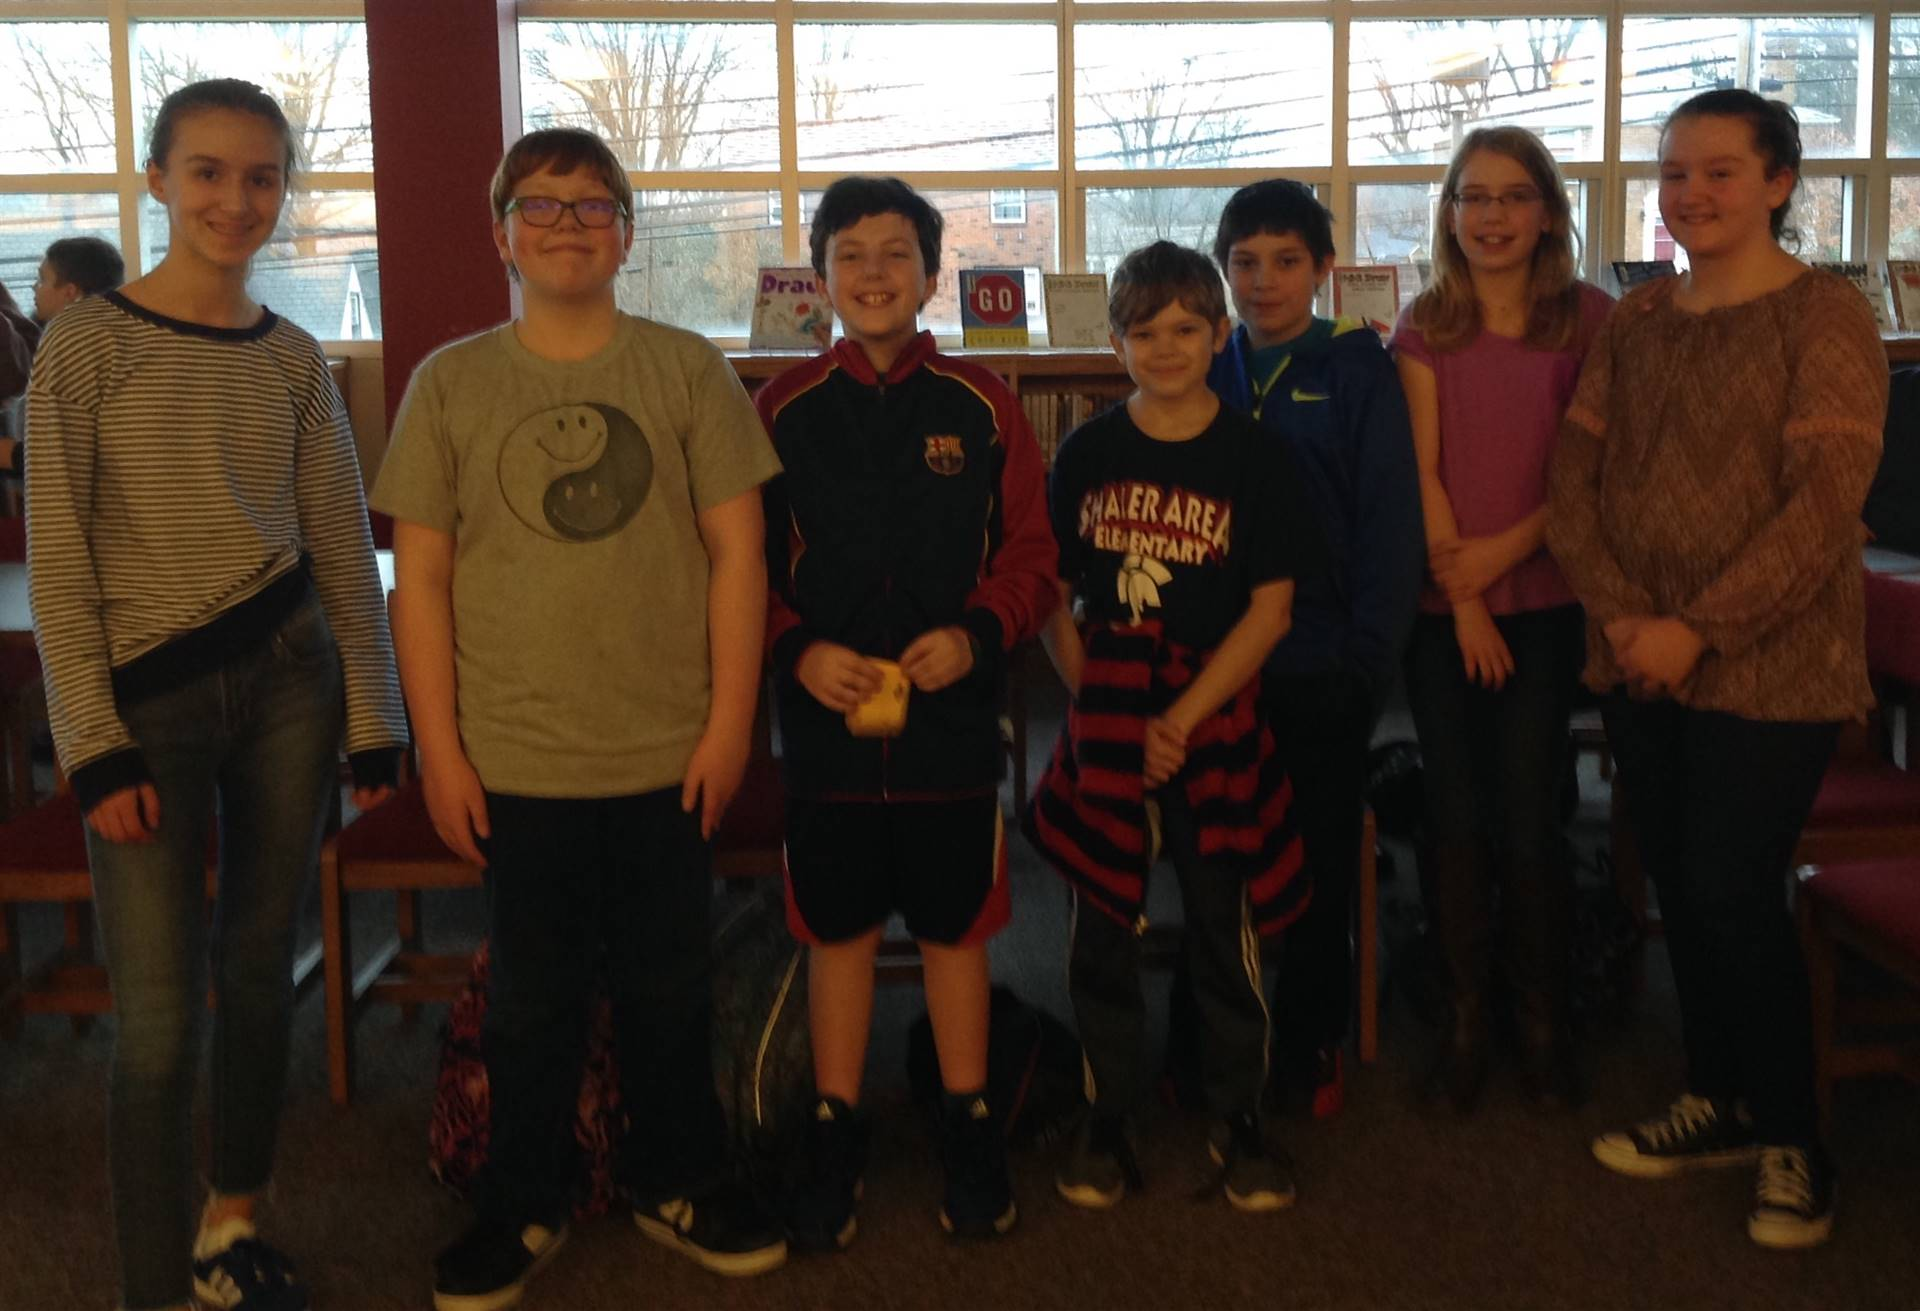 7 Students from SAES Who Participated in the Spelling Bee